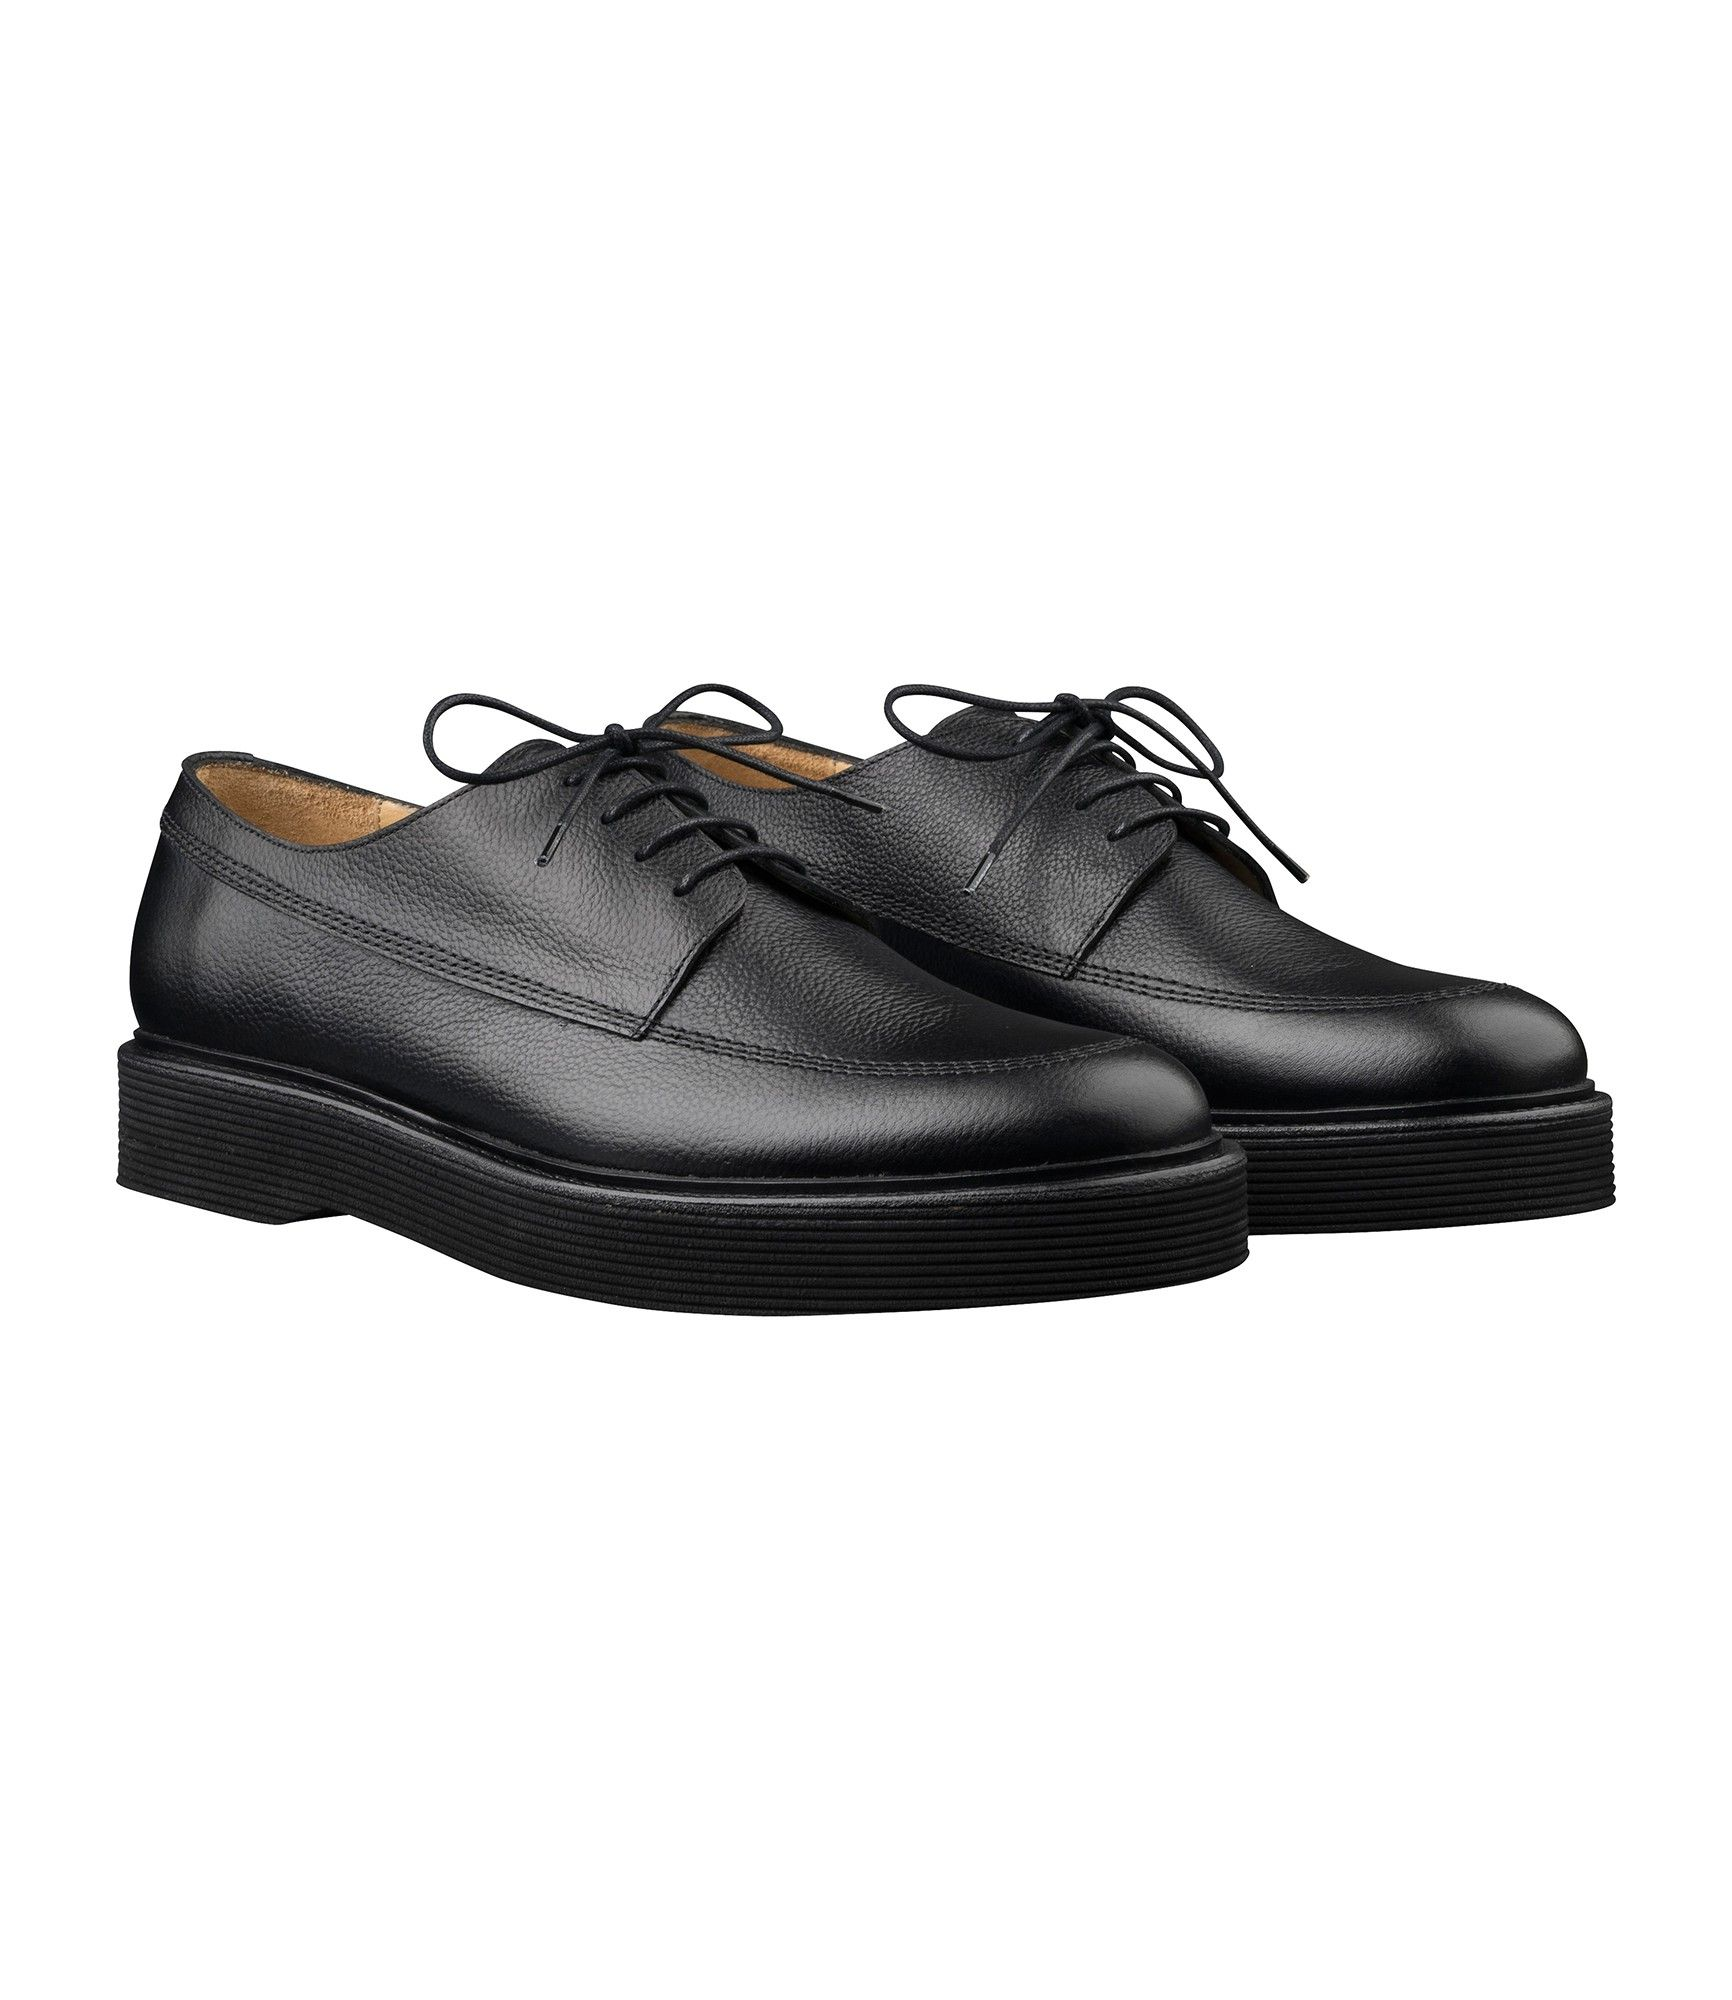 Lace Up Shoes for Men Oxfords, Derbies and Brogues On Sale, Black, Leather, 2017, 6.5 Moma